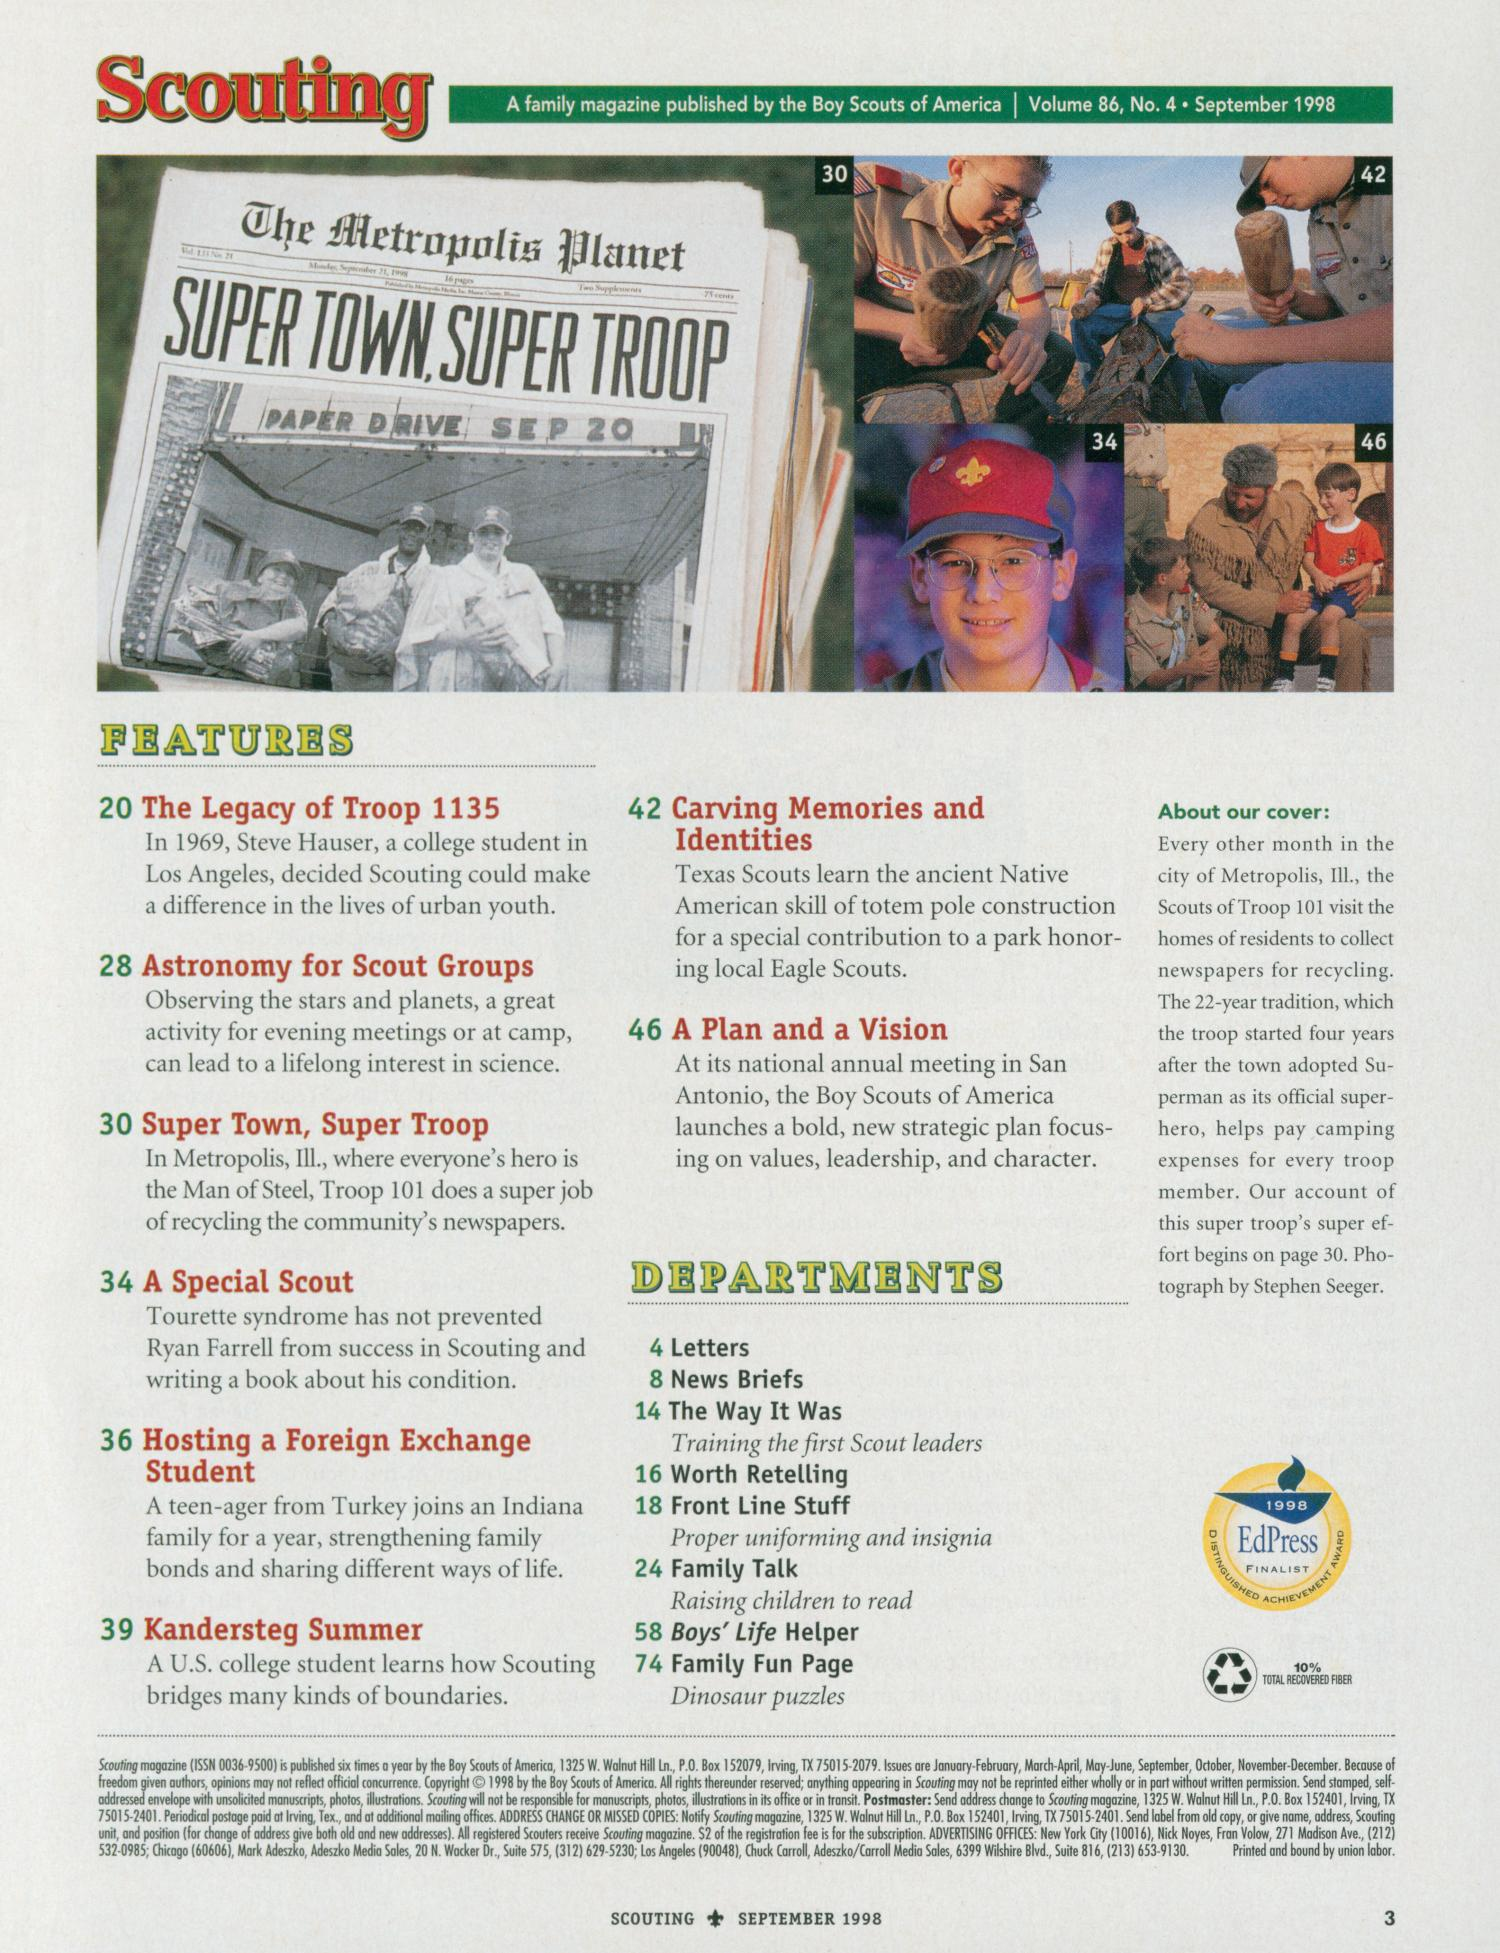 Scouting, Volume 86, Number 4, September 1998                                                                                                      3